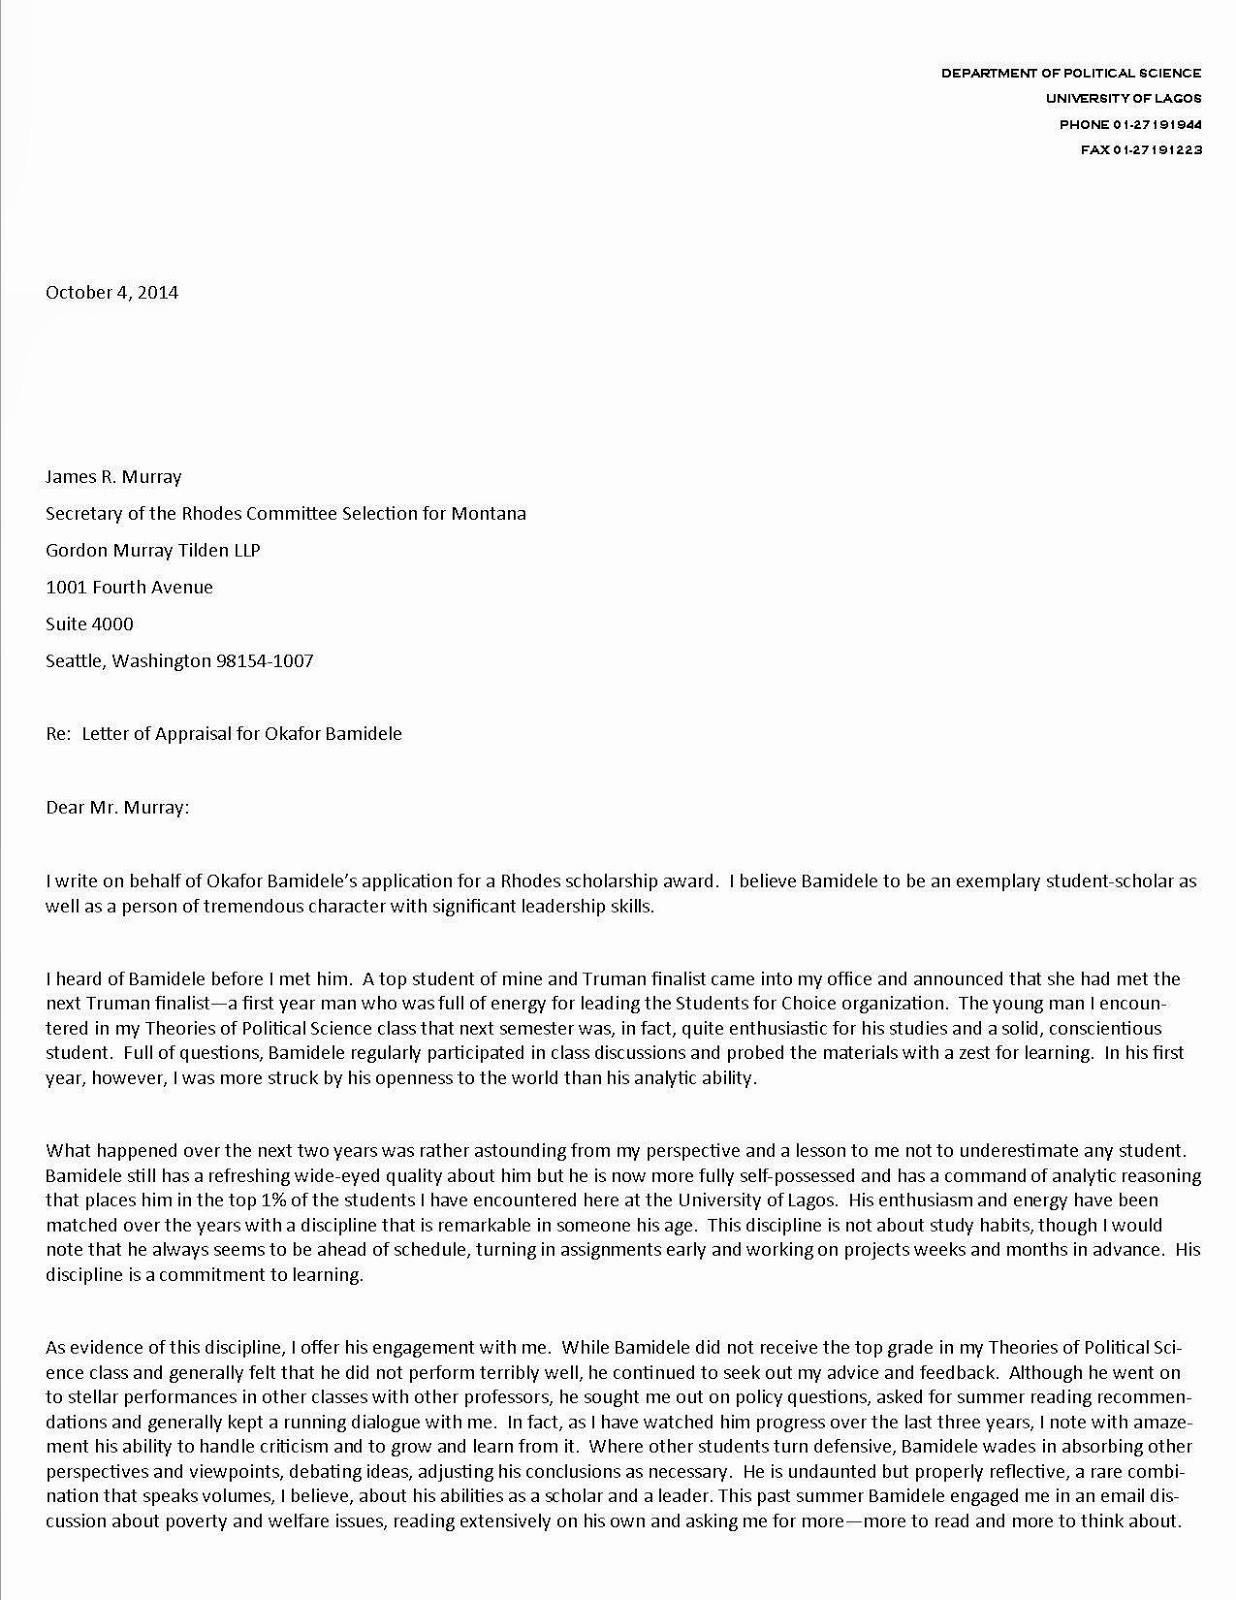 Recommendation Letter format for Student Inspirational Sample Student Re Mendation Letter for Scholarship